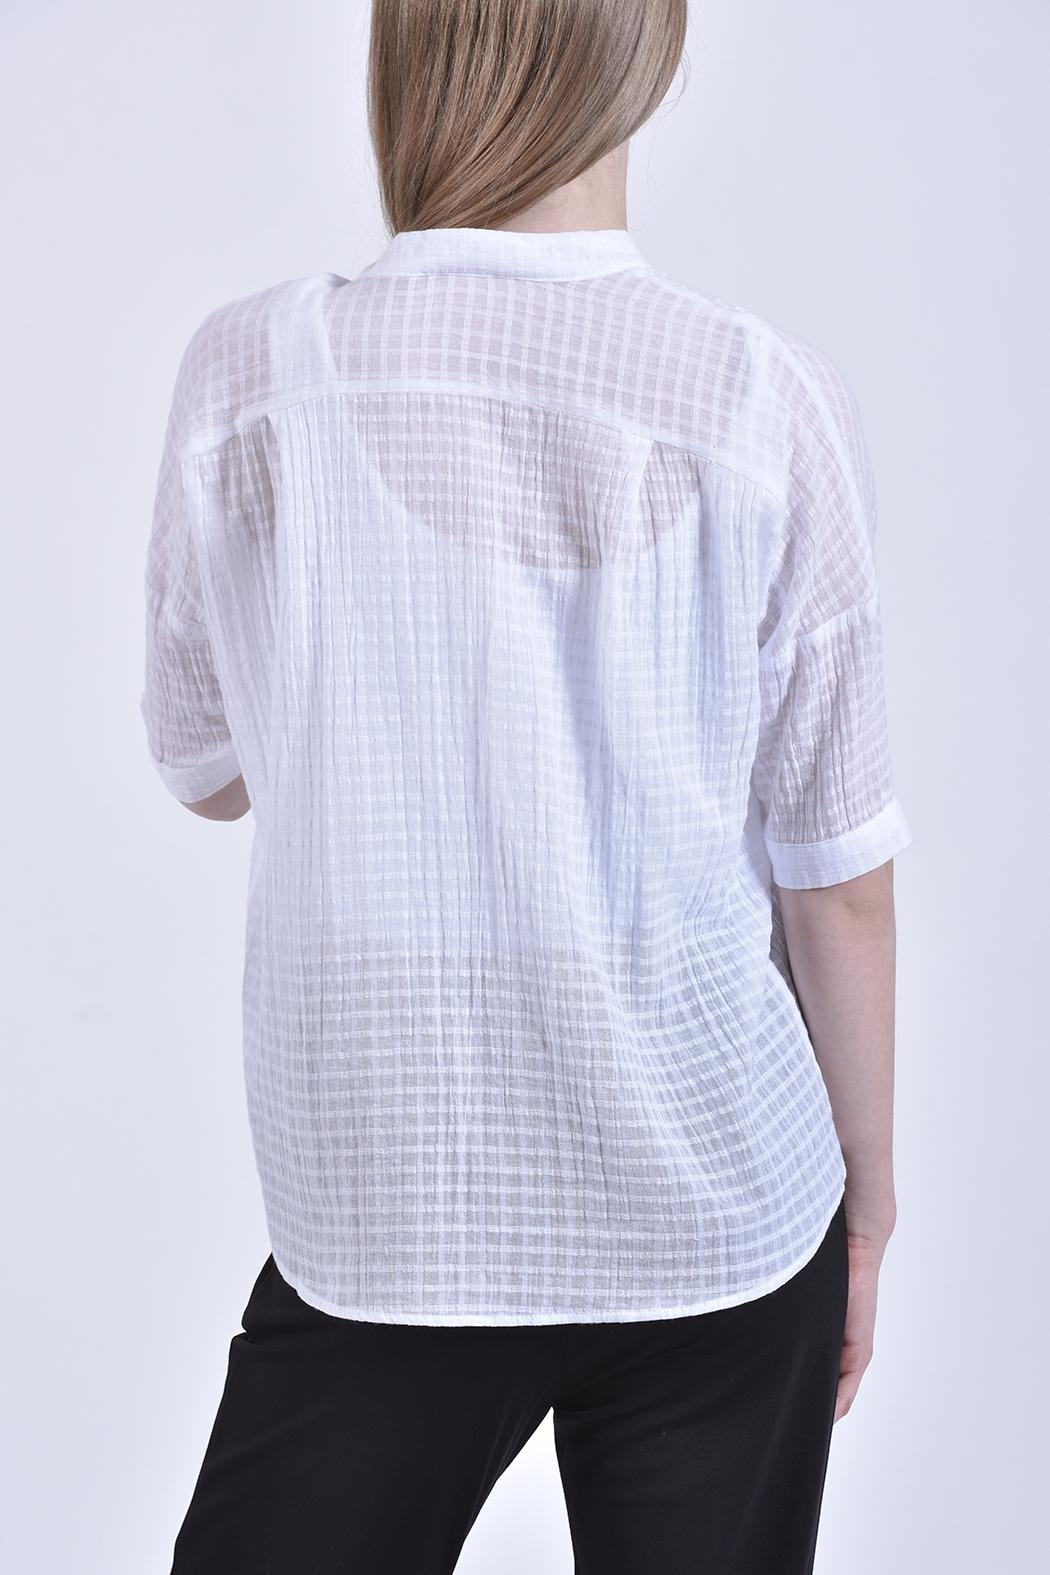 jane plus one White Cotton Top - Front Full Image